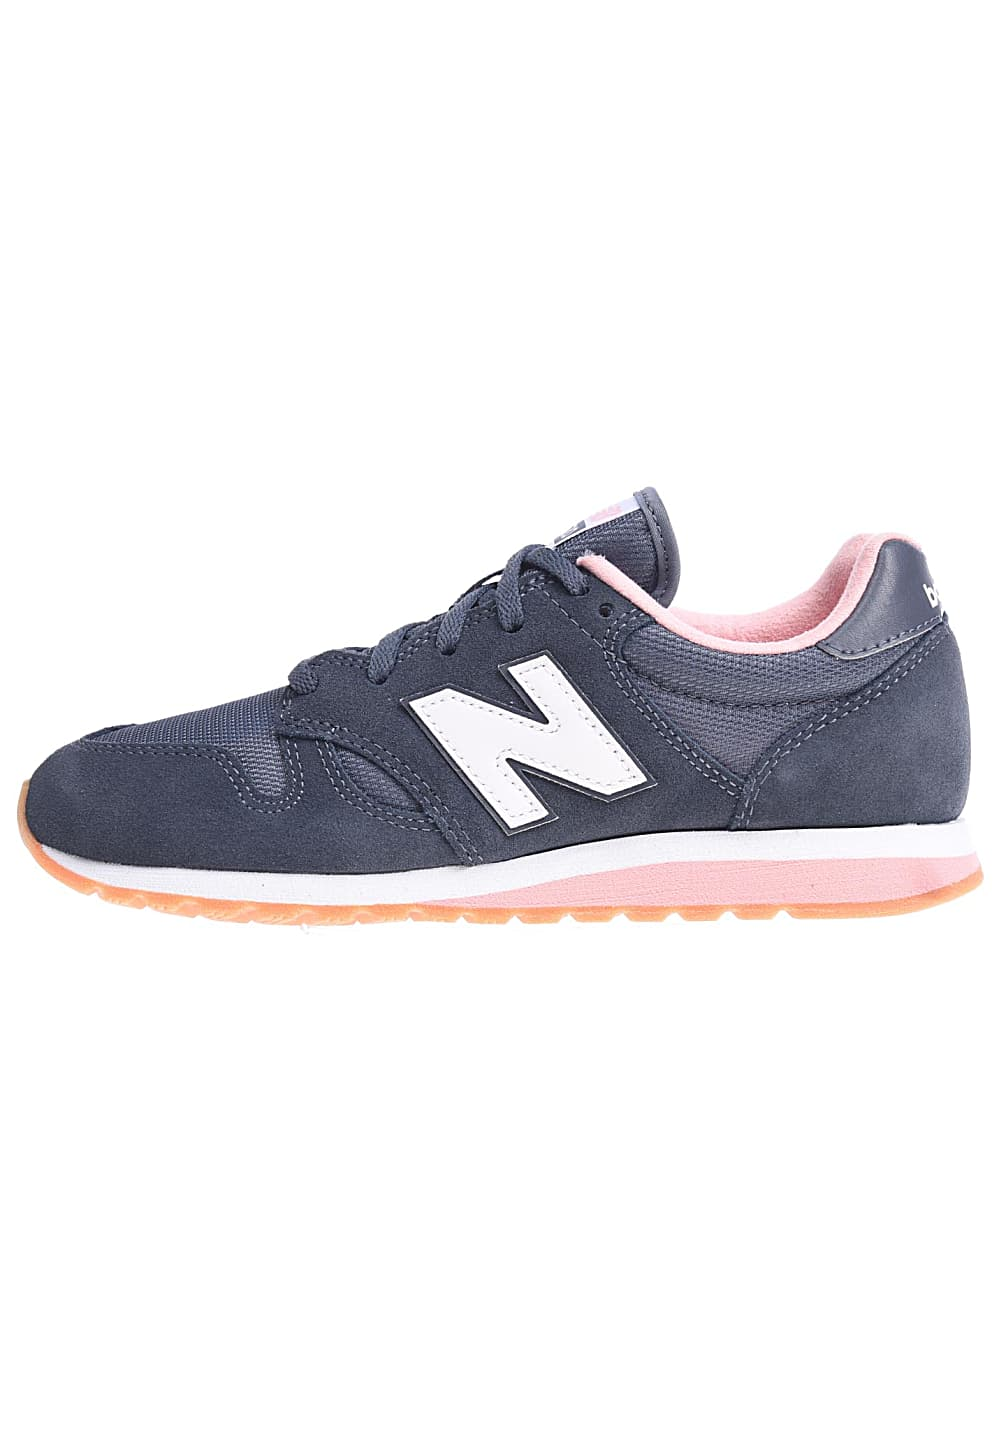 NEW BALANCE WL520 B - Sneaker für Damen - Blau - Planet Sports